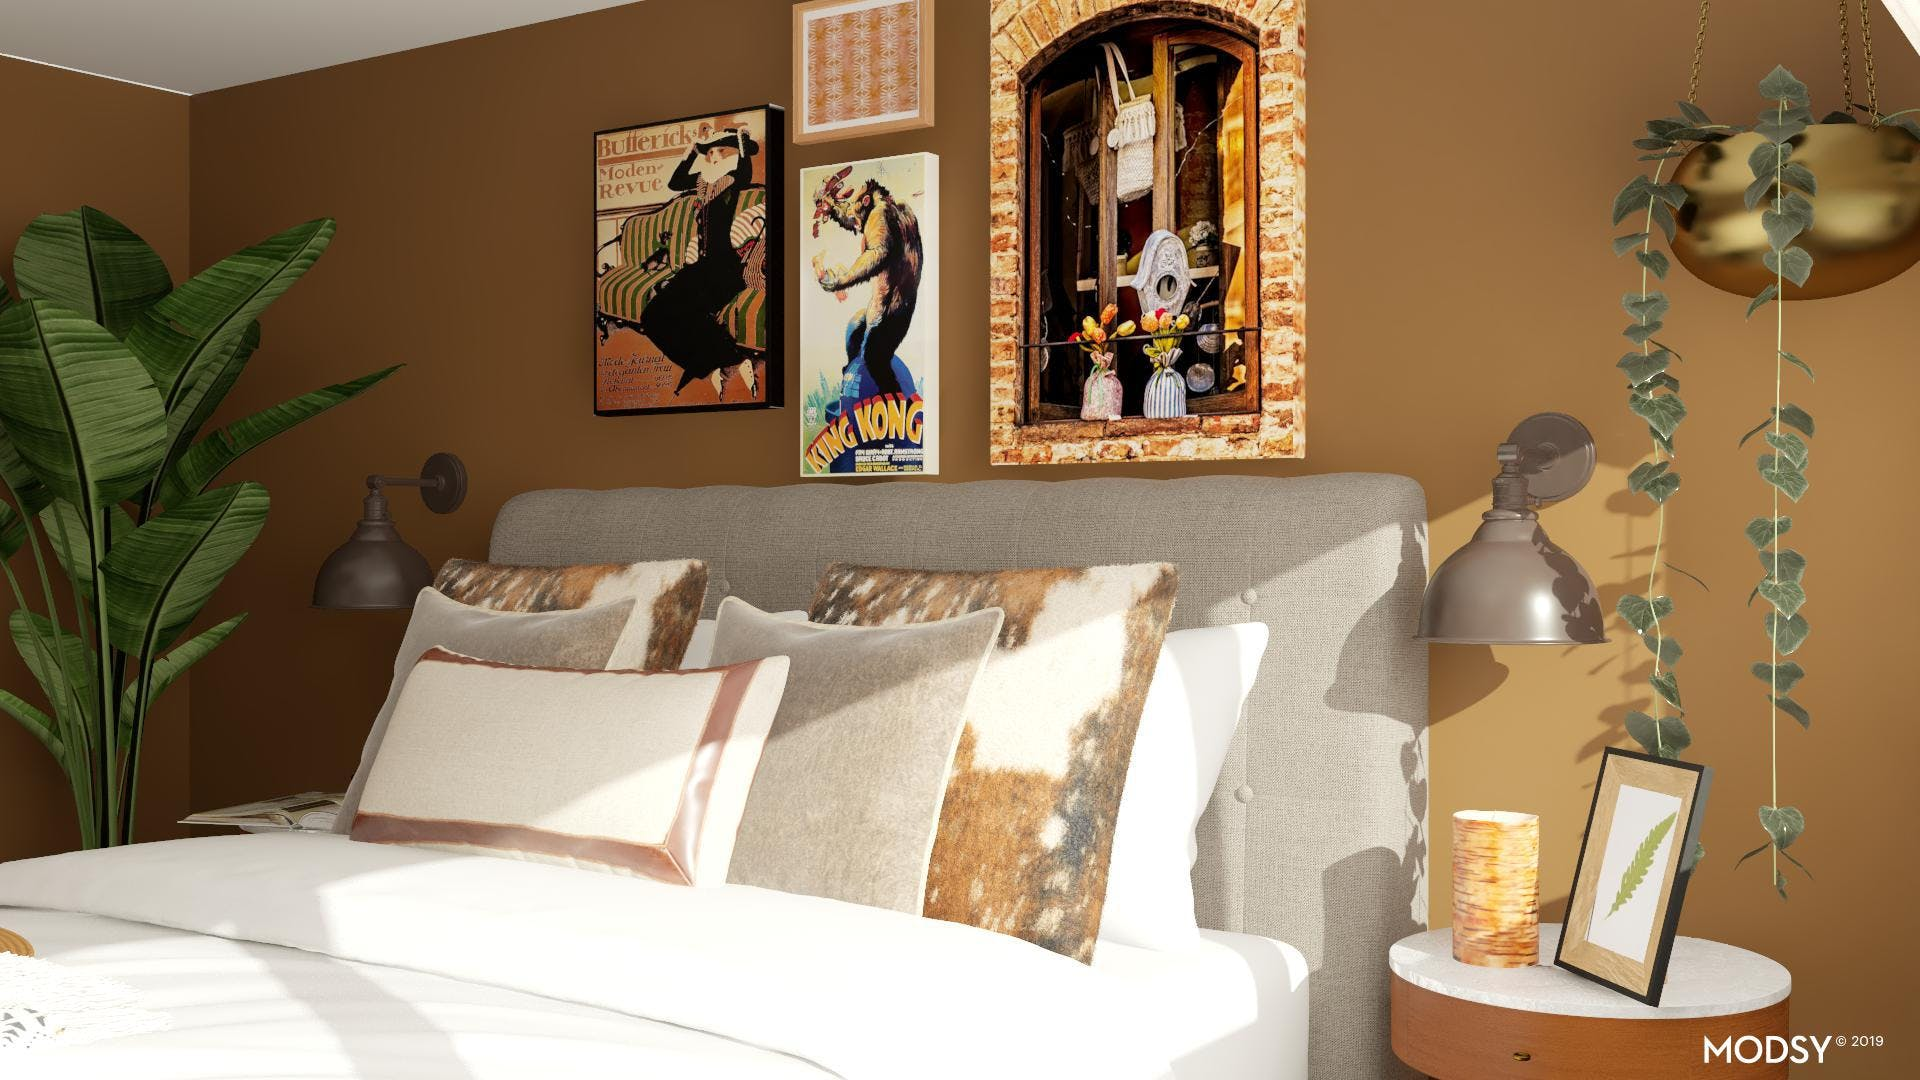 Space and Style in a Cozy Eclectic Bedroom